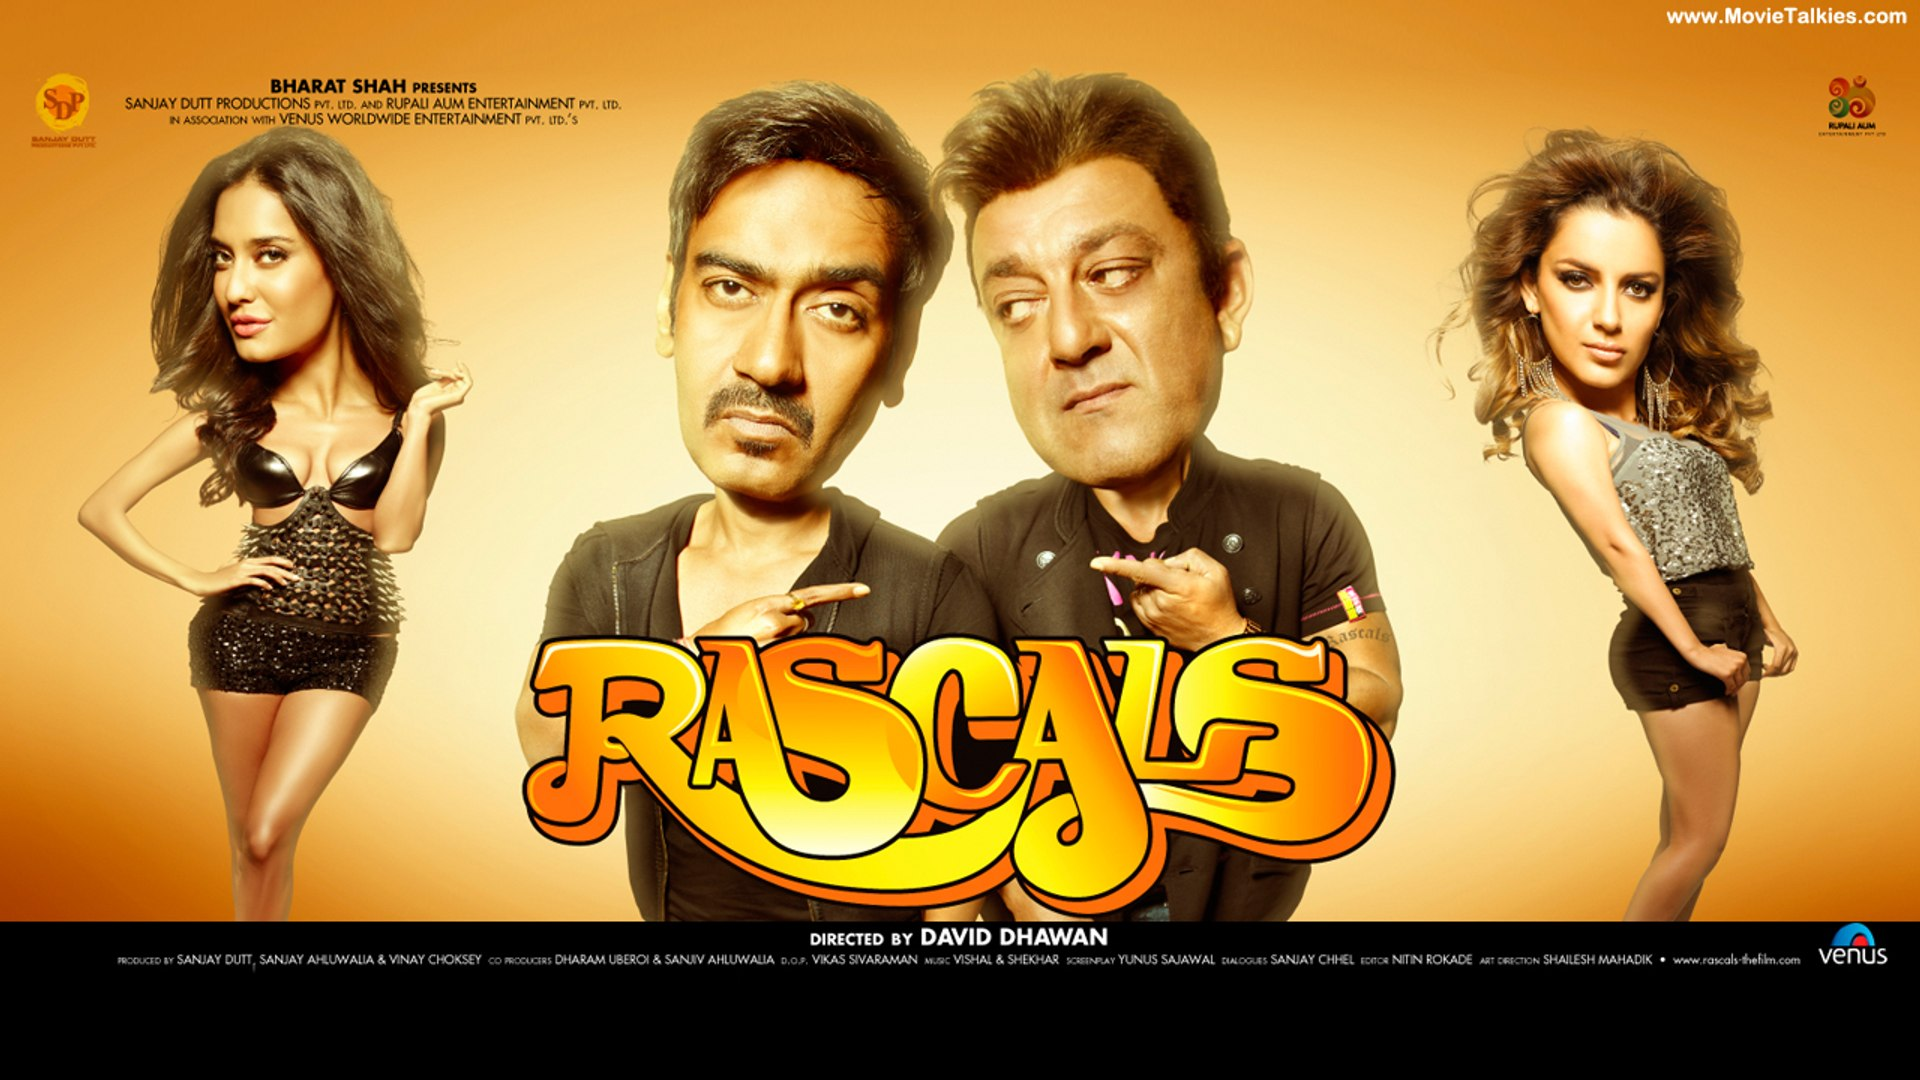 Rascals  Hindi Movies Full Movie  Ajay Devgan Full Movies  Latest Bollywood Full Movies PART 3